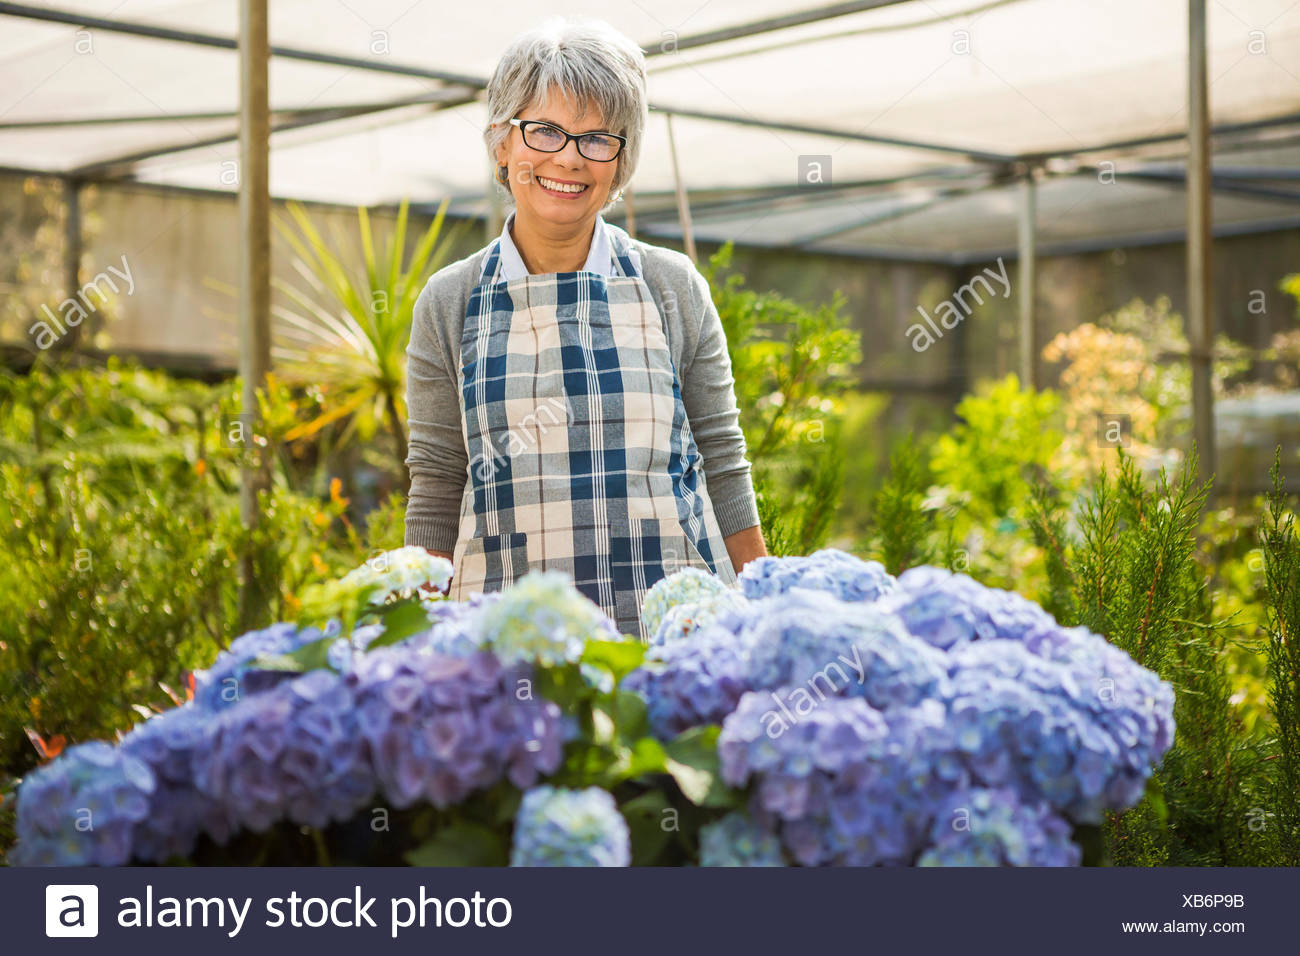 A day in a green house - Stock Image